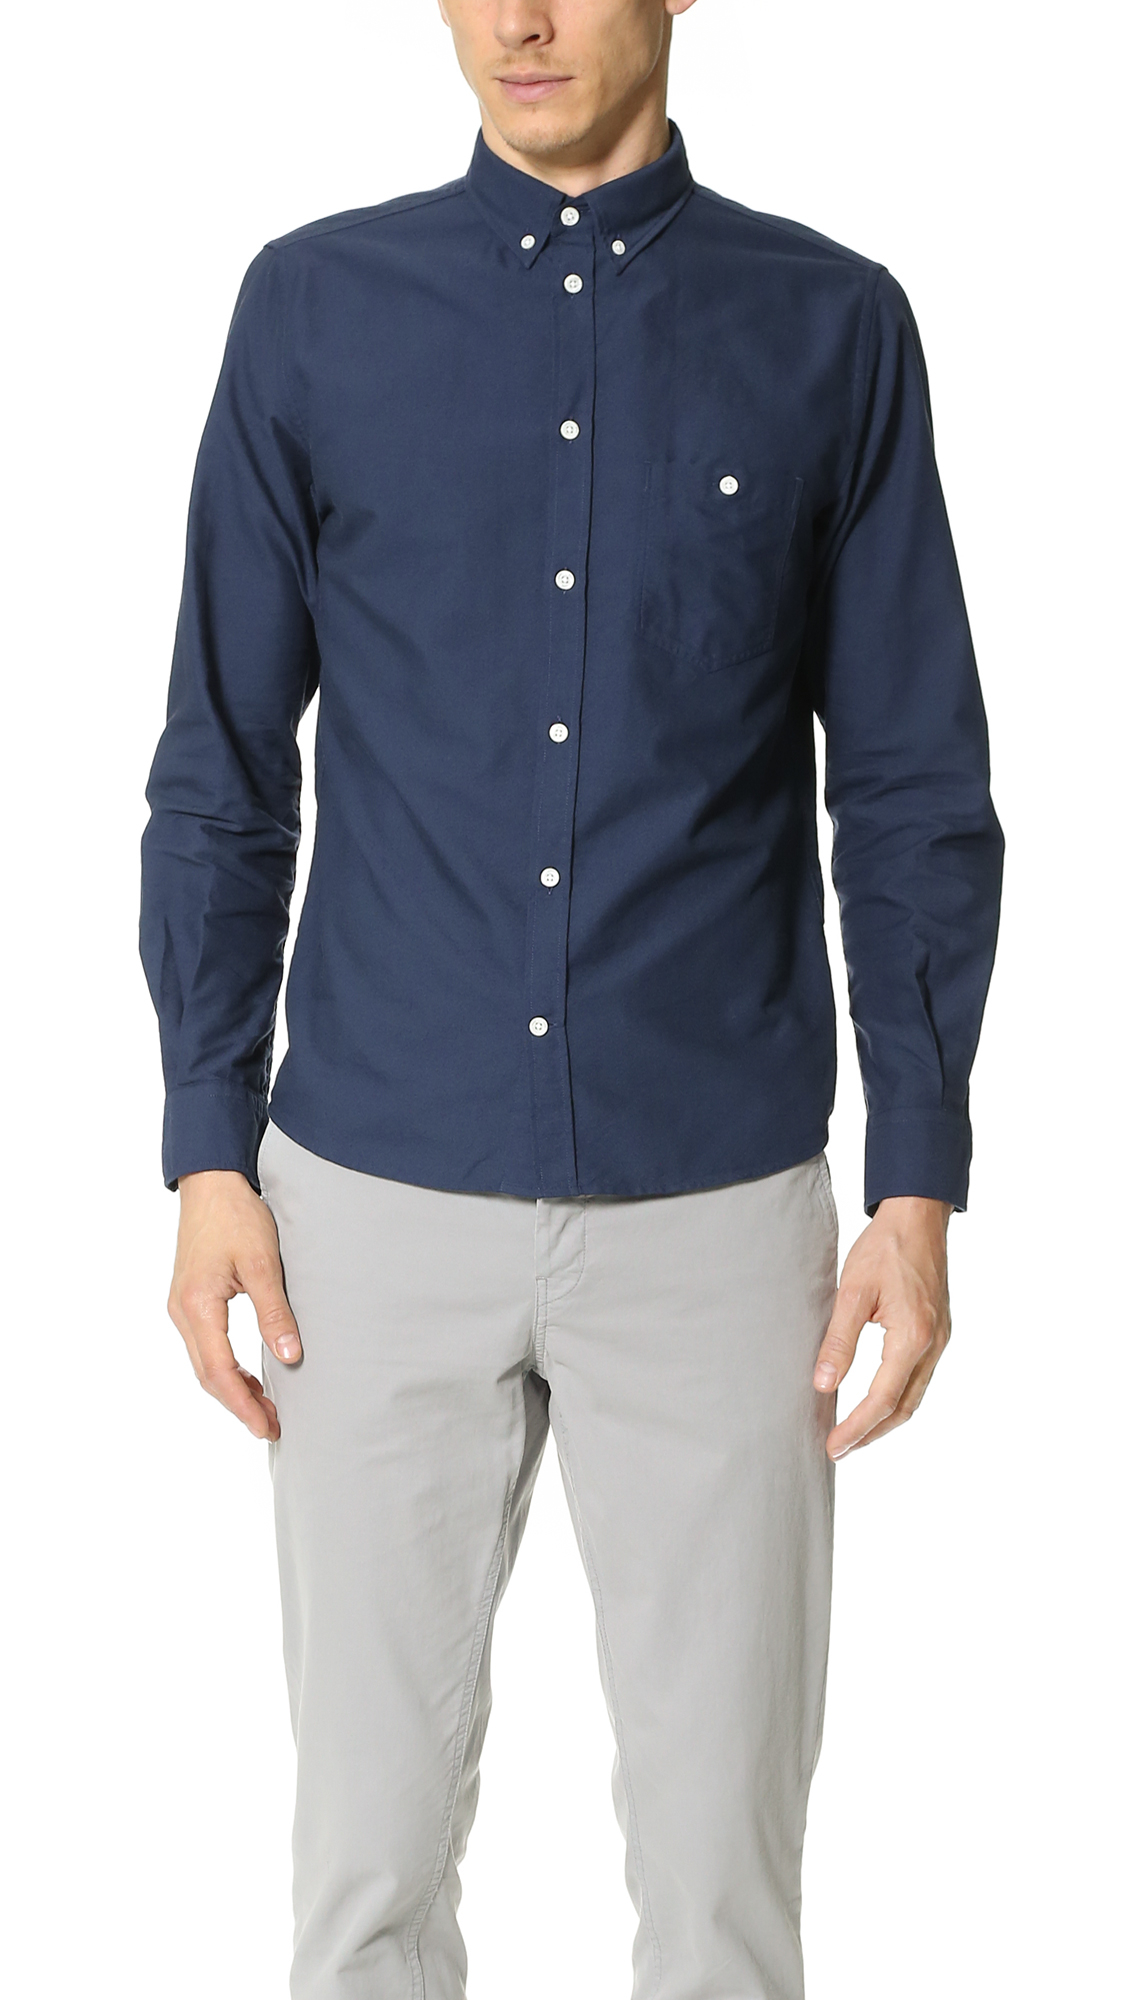 61007e7f Norse Projects Anton Oxford Shirt in Blue for Men - Lyst